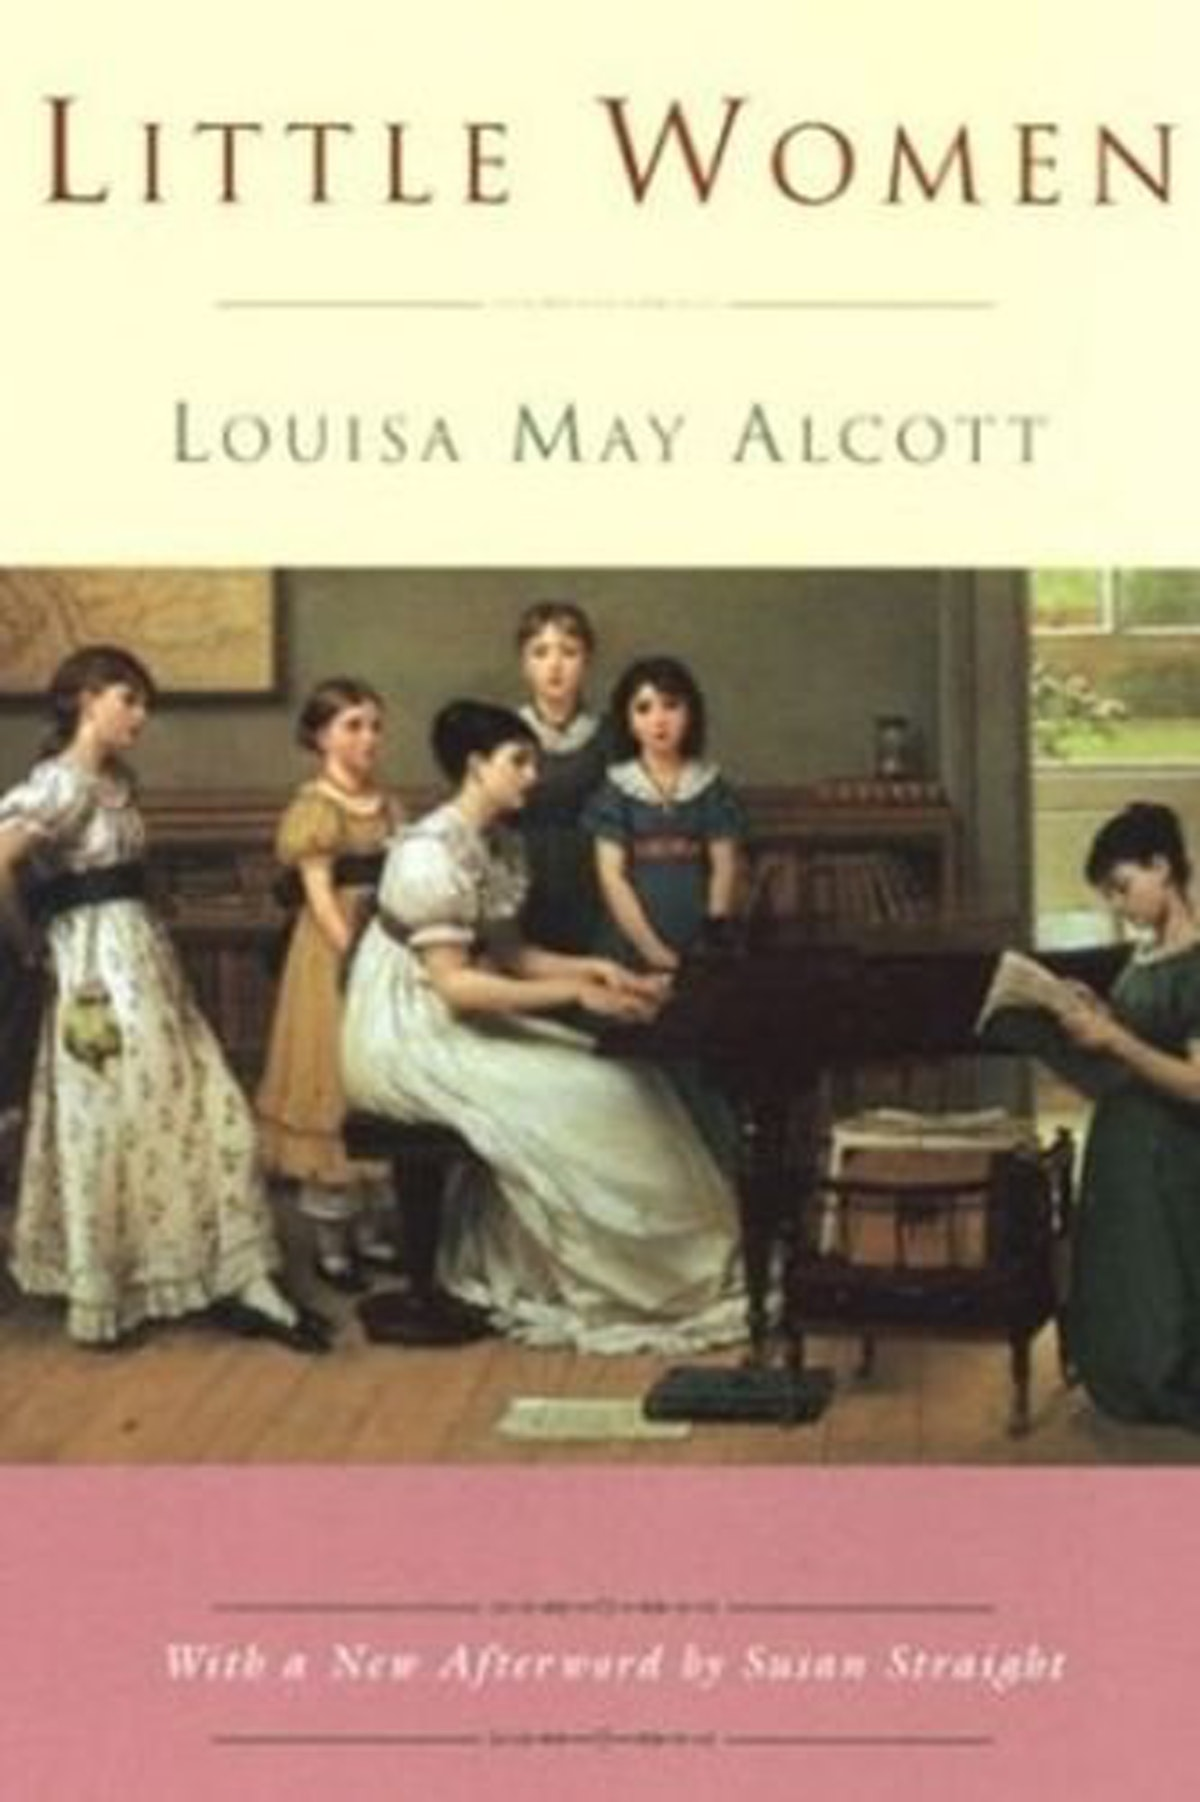 little women louisa may alcott essay For many readers, louisa may alcott is synonymous with her most famous character, jo march, the spirited sister in little women.